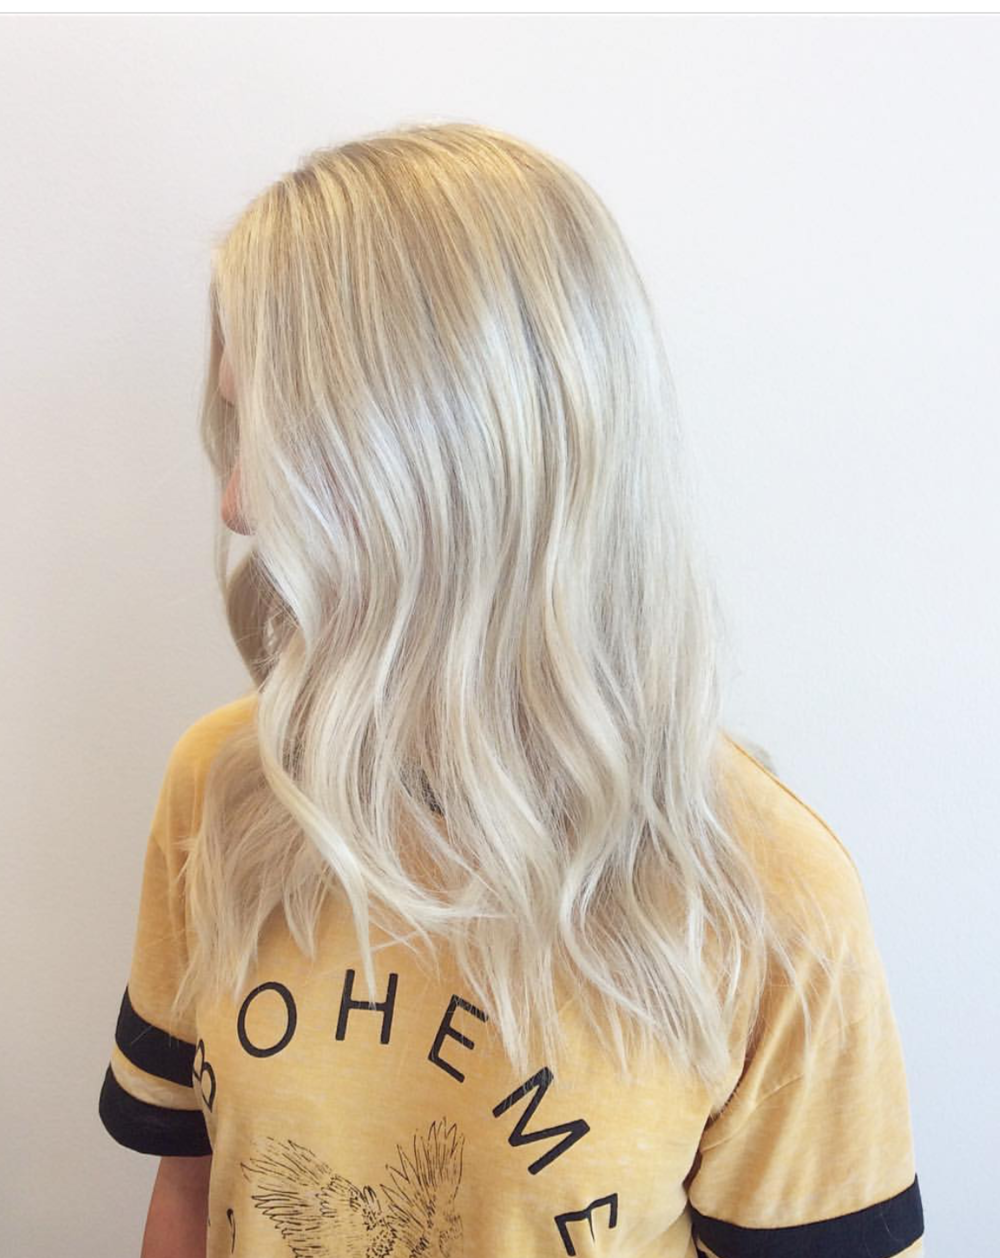 What To Ask Your Stylist For To Get The Color You Want